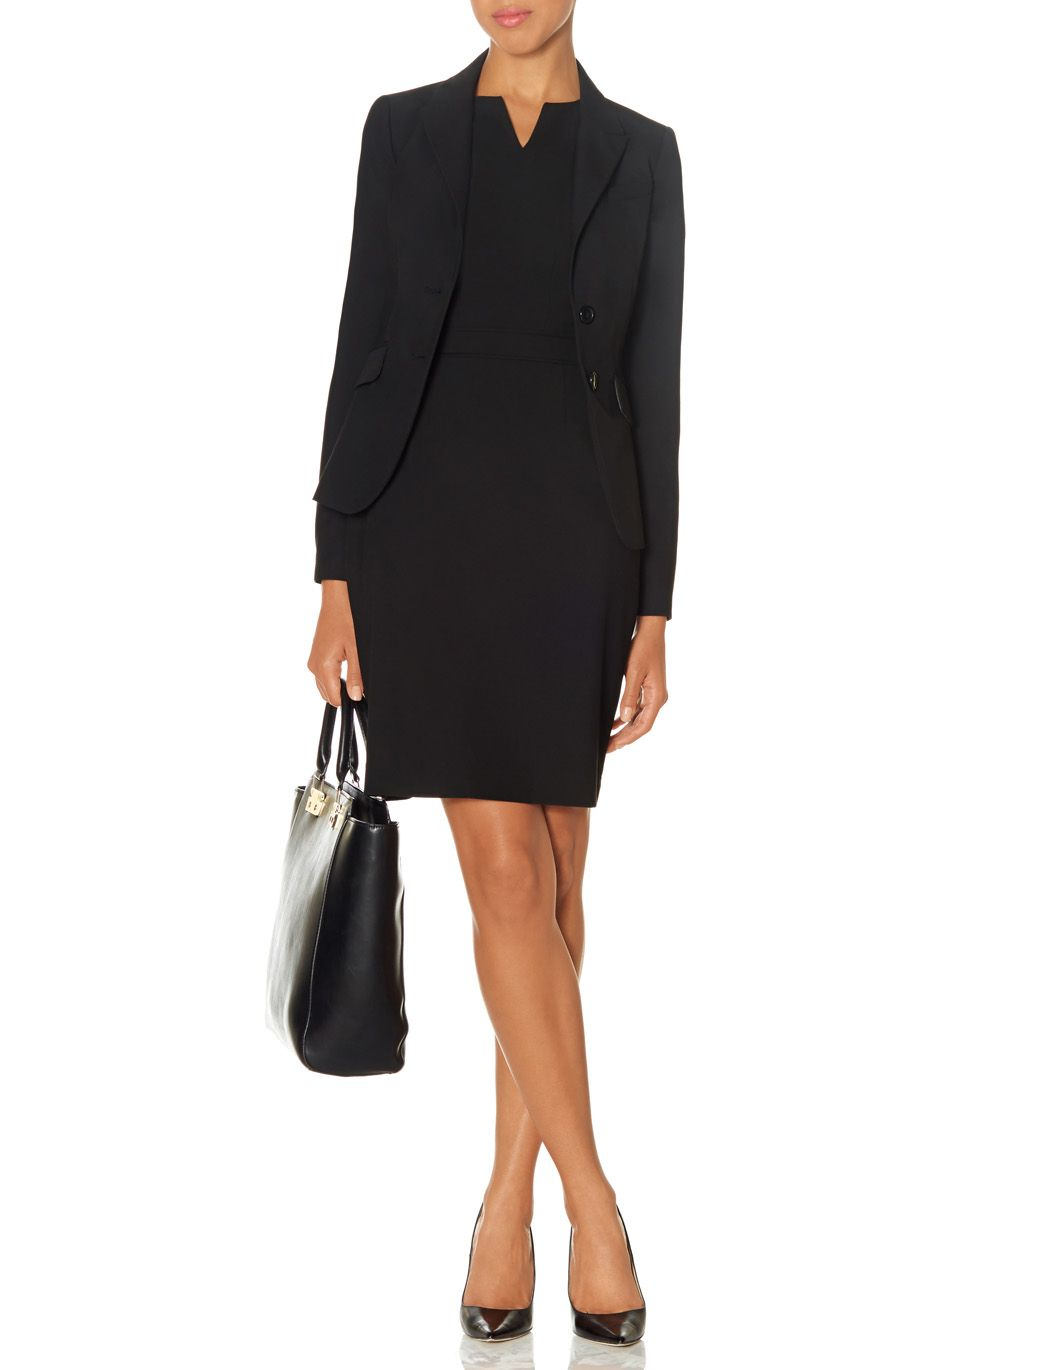 Collection Sheath Dress Wear To Work Sheath Dress The Limited Interview Attire Wearing Dress Pantsuits For Women [ 1370 x 1050 Pixel ]